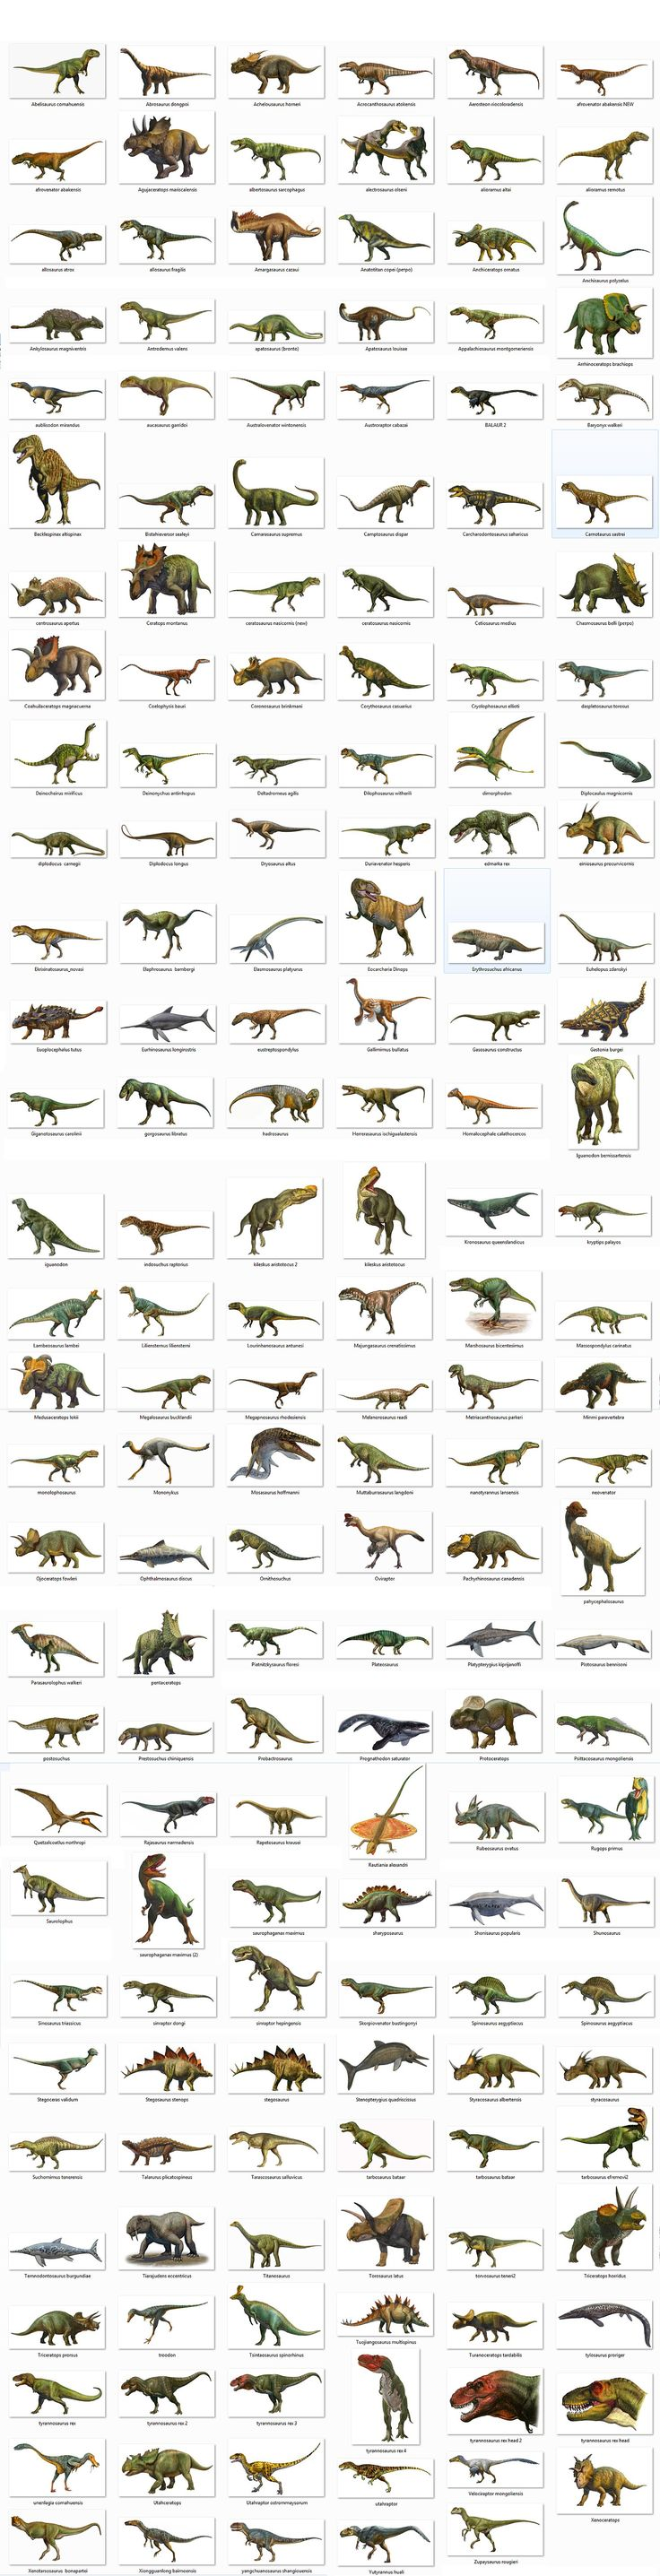 When we were kids didn't they only tell us about <10 dinosaurs? Open the source page or save to read better.